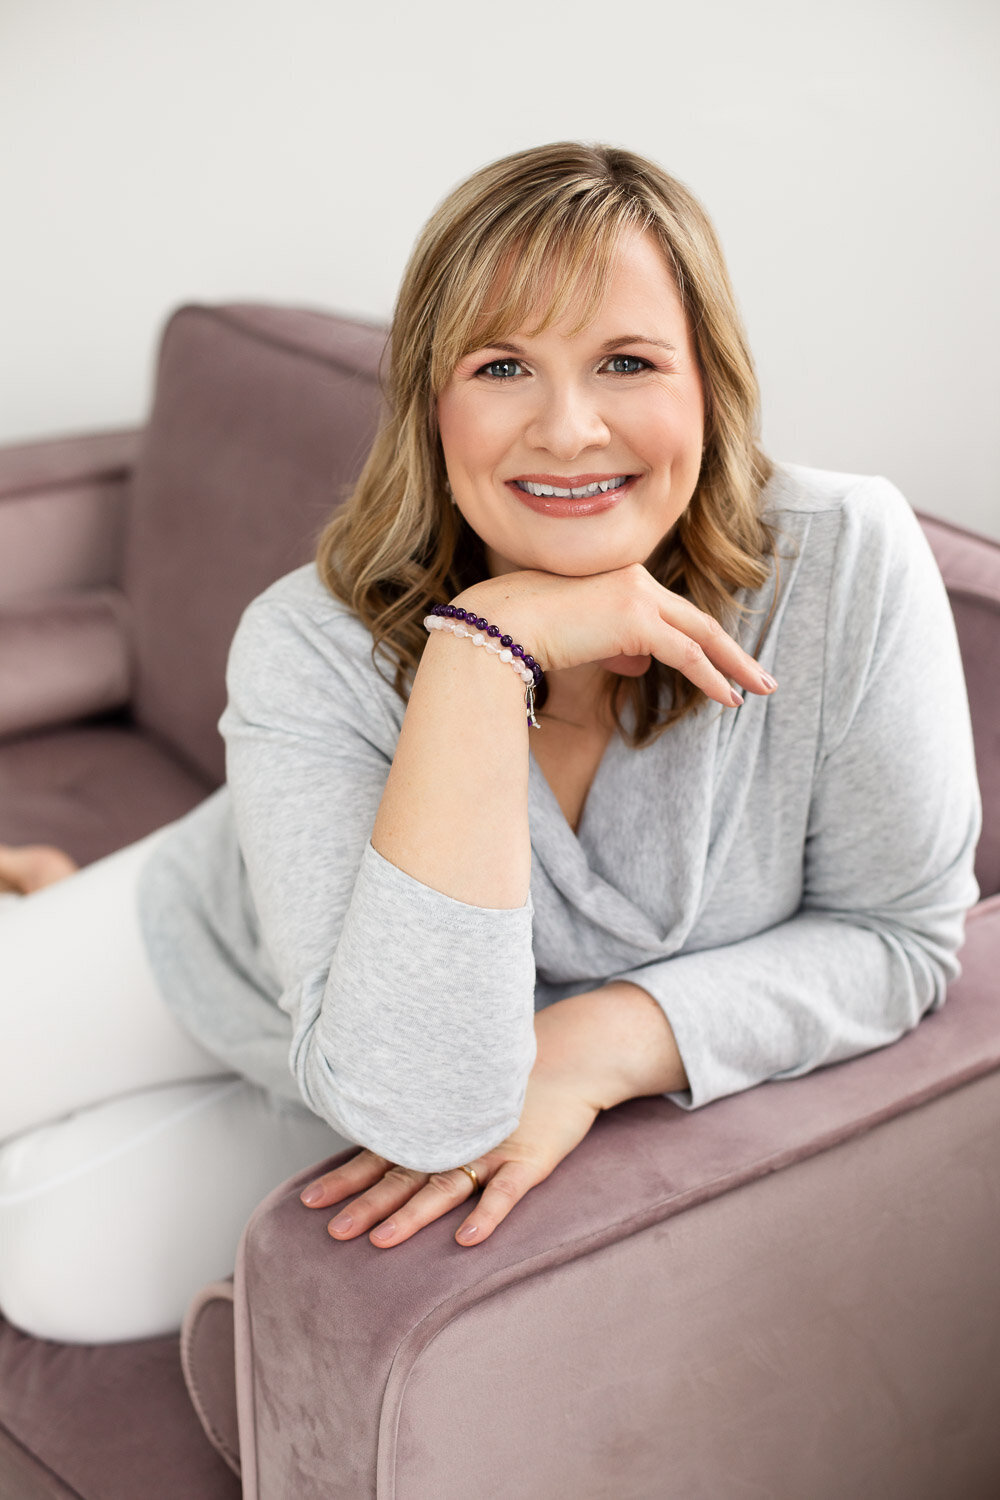 Woman sitting on pink sofa smiling